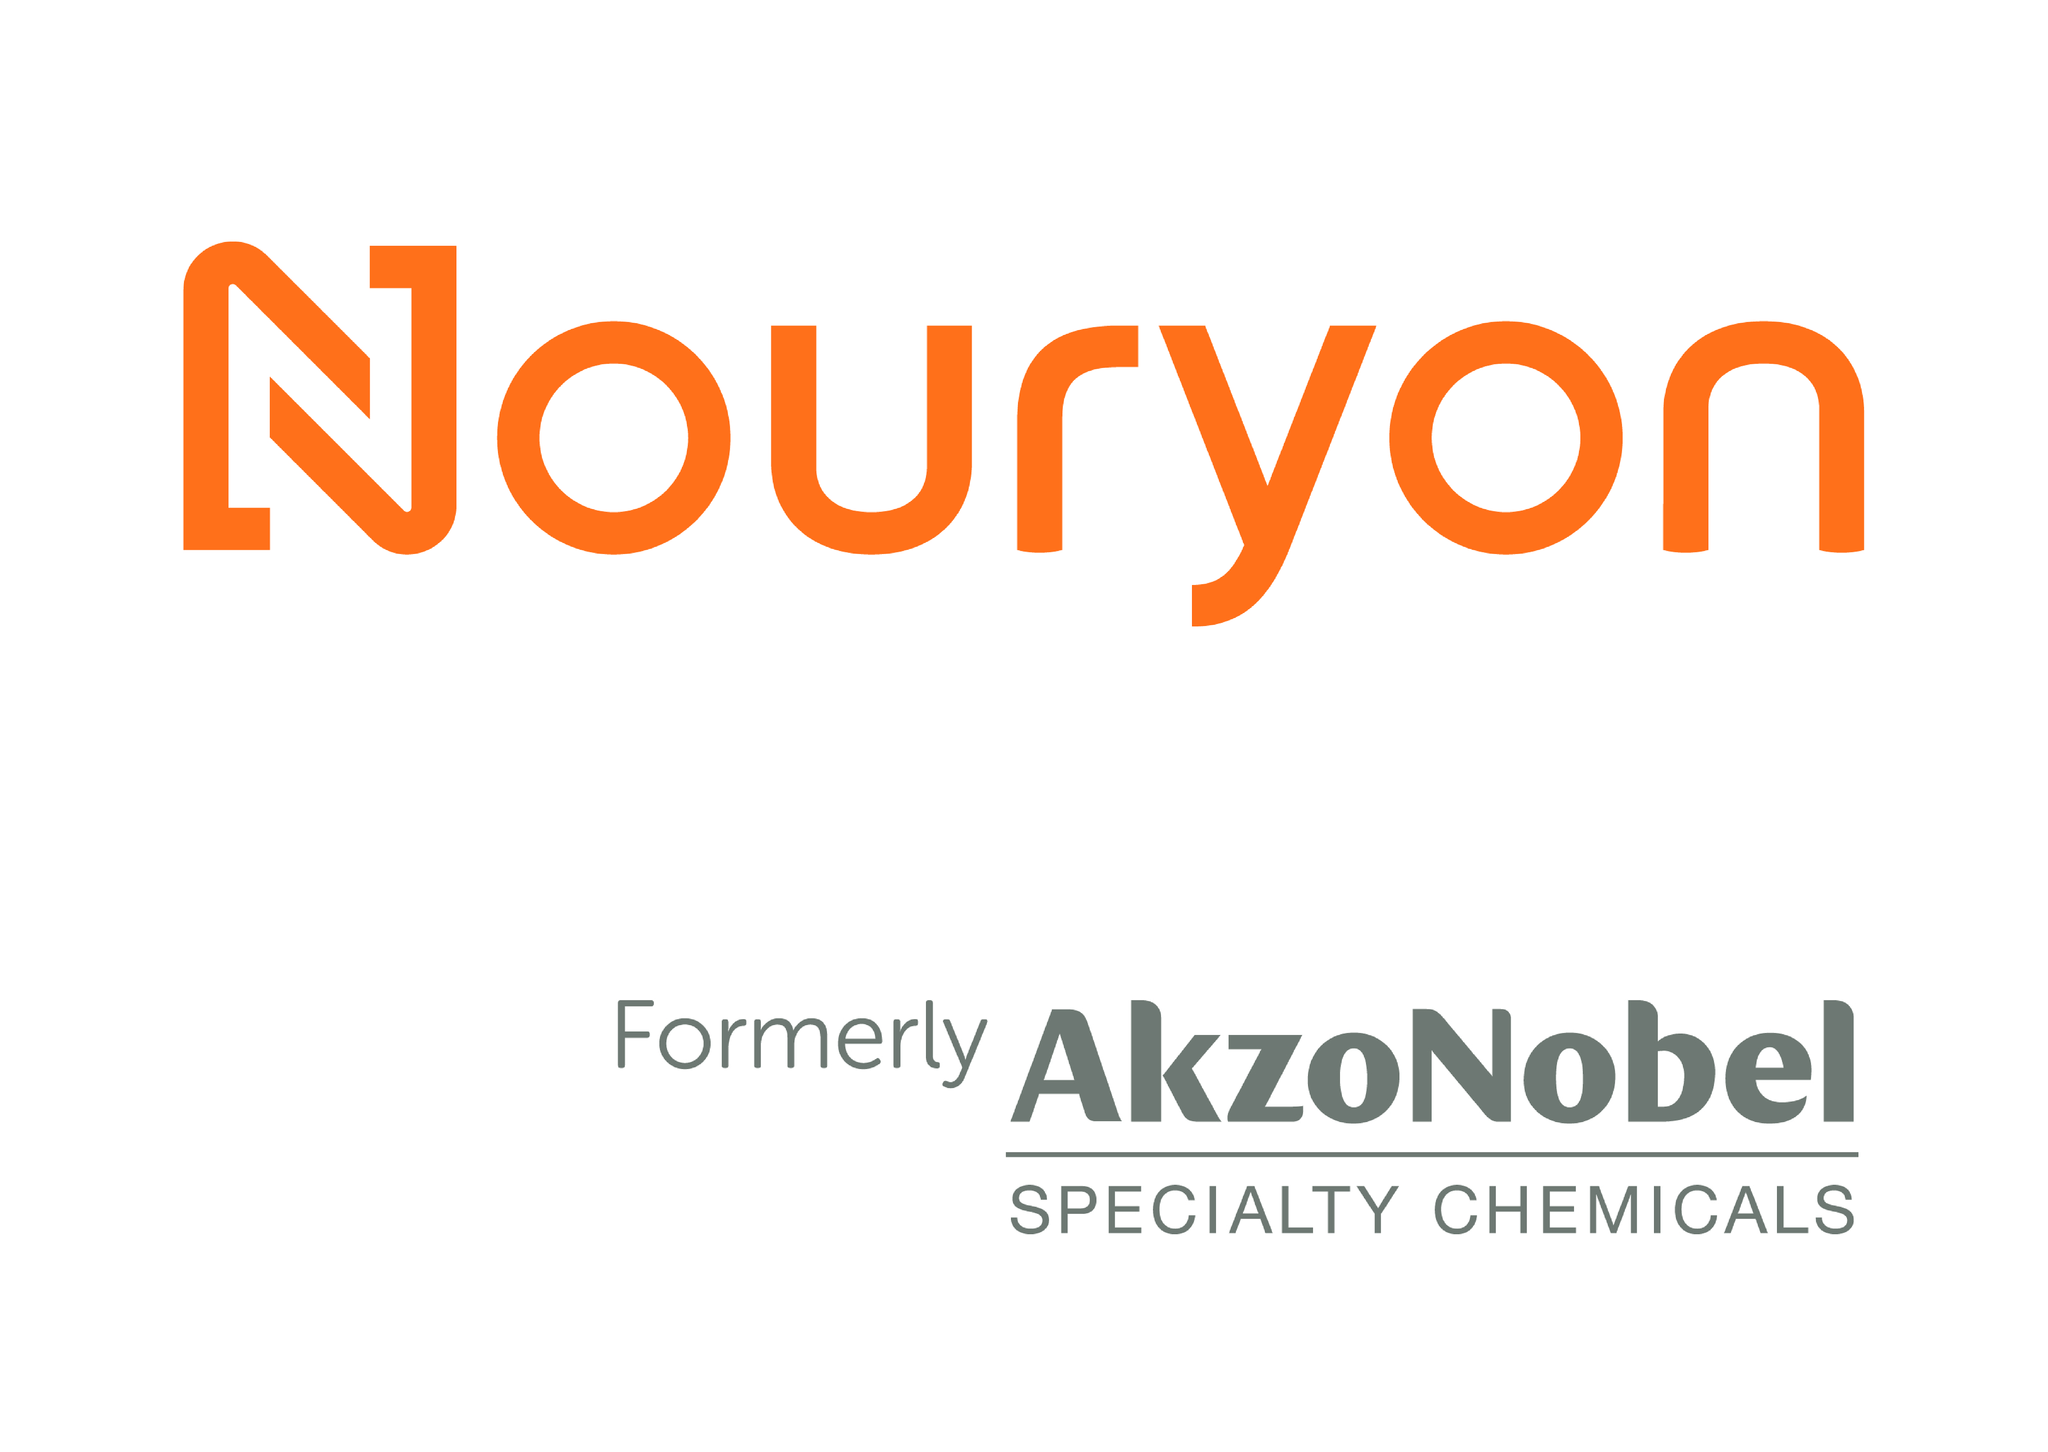 NOURYON  (AKZONOBEL SPECIALITY CHEMICALS)